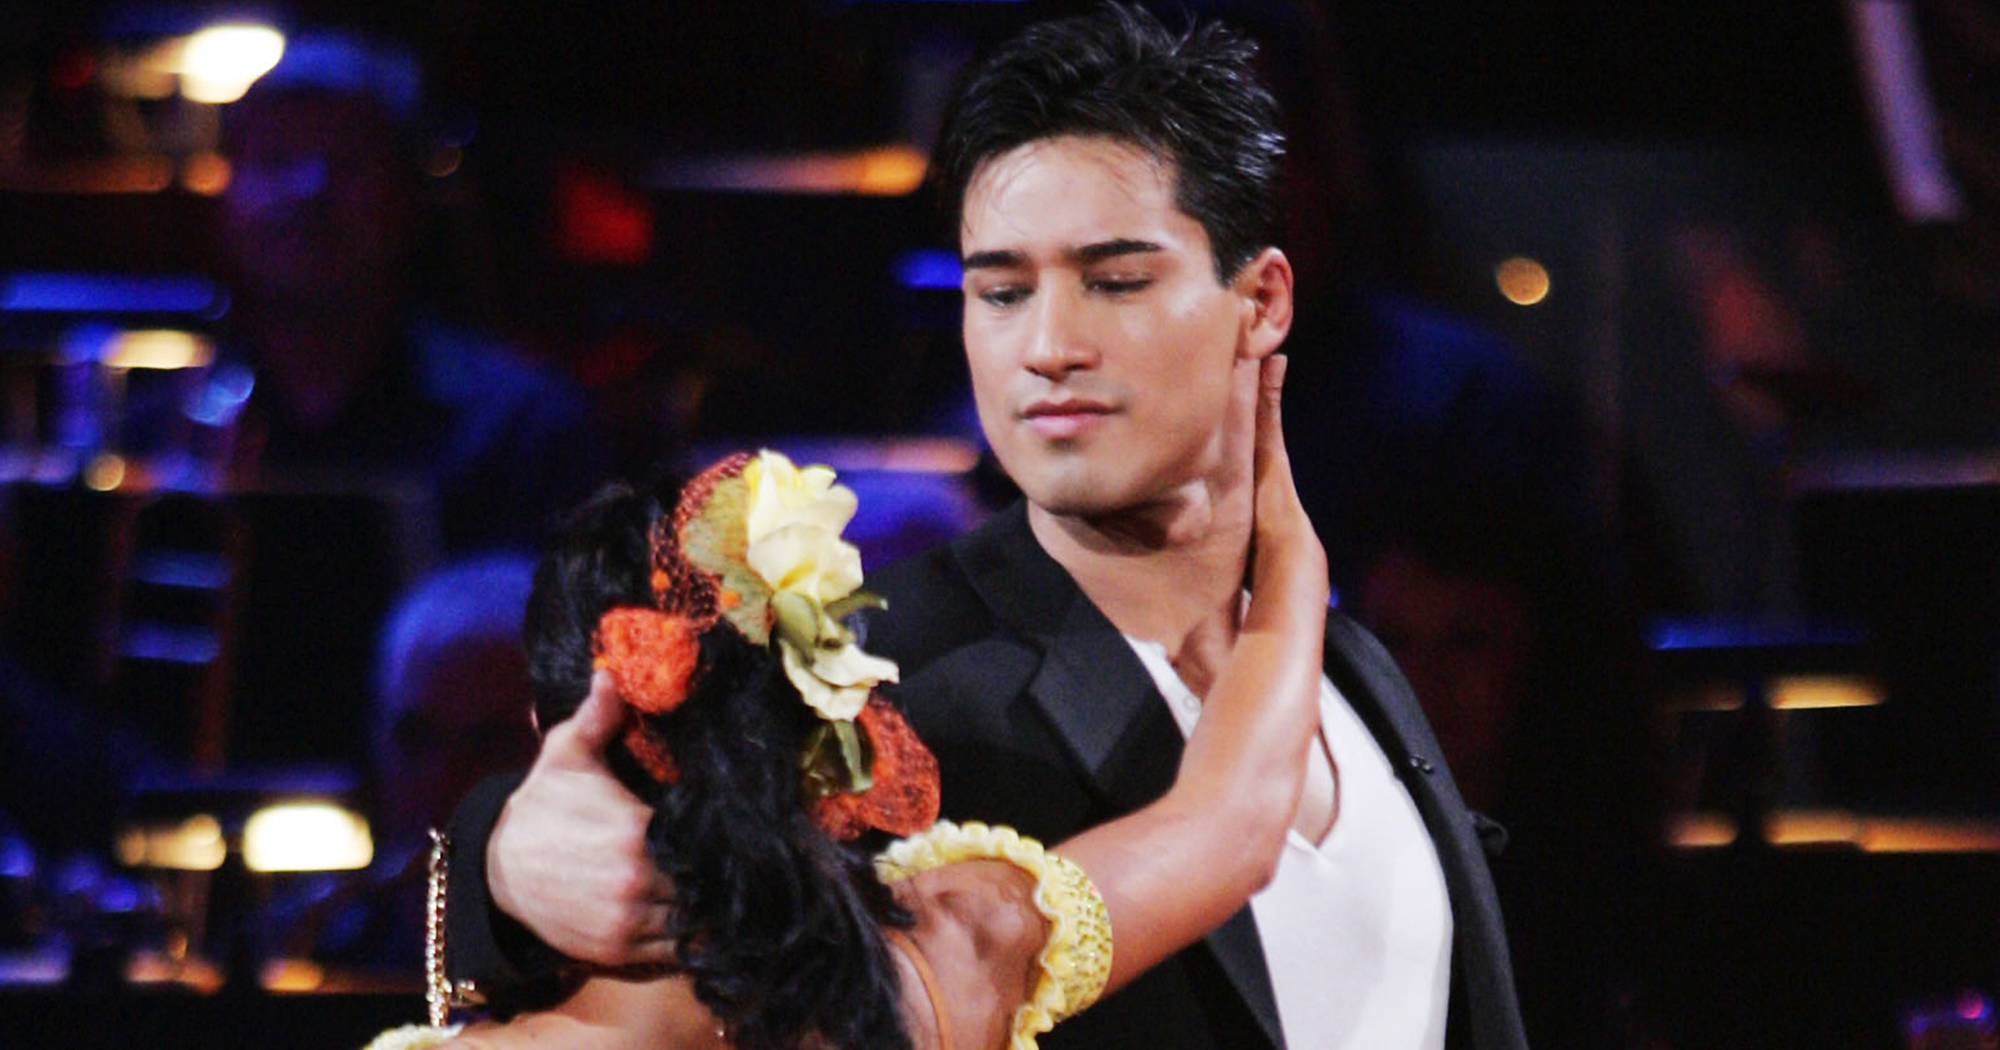 Dancing With The Stars Hookups Breakups: Dancing With The Stars Couples That Hooked Up, Romances